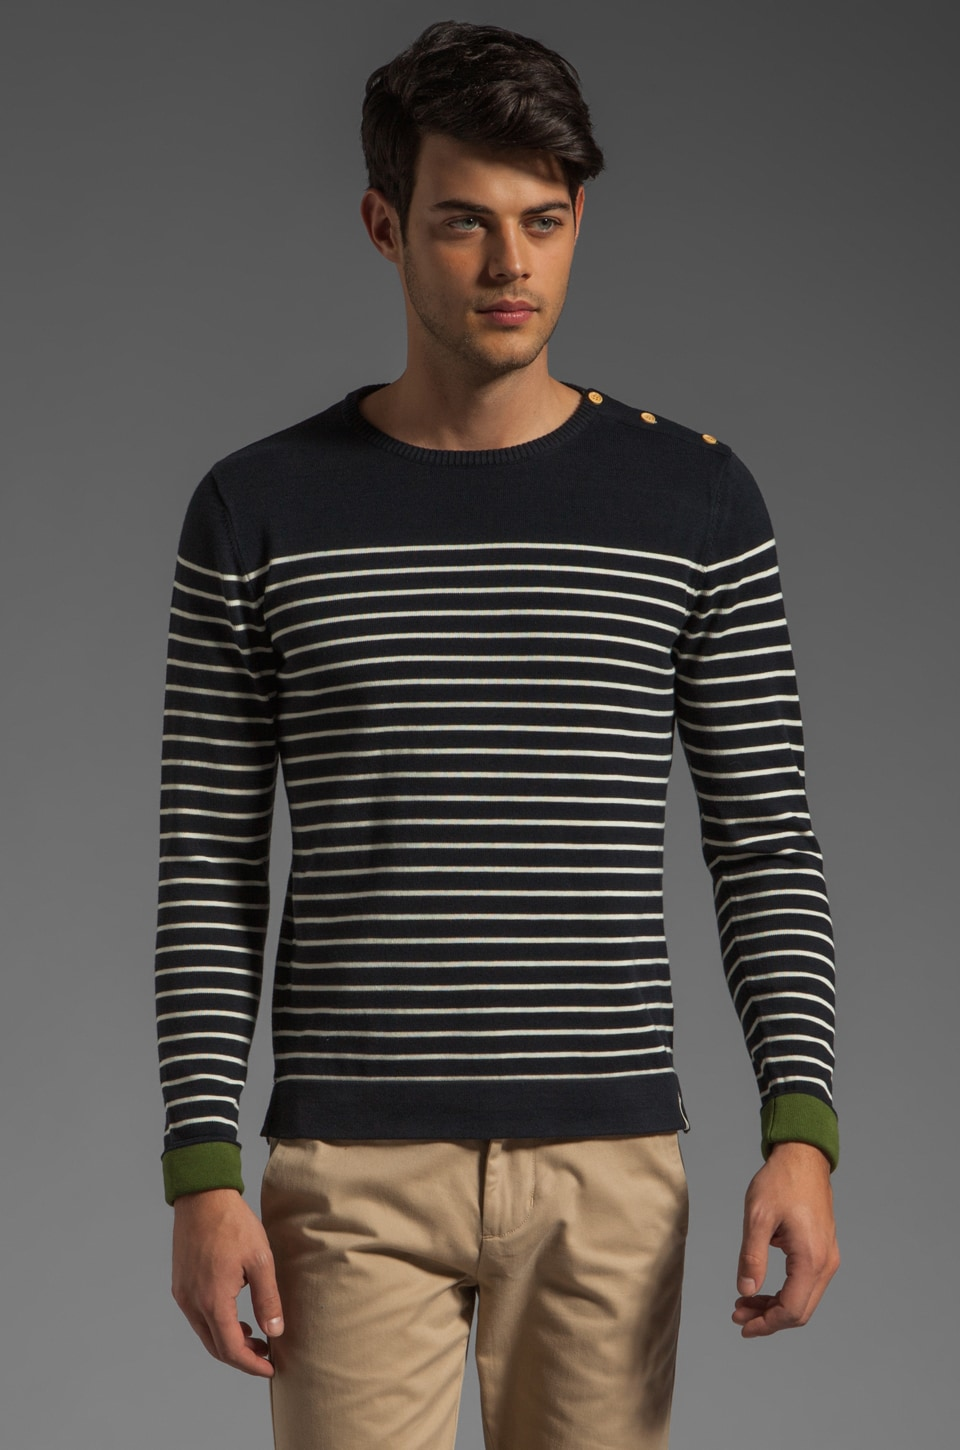 J. Lindeberg Shipley Stripe Knit Pullover in Dark Navy